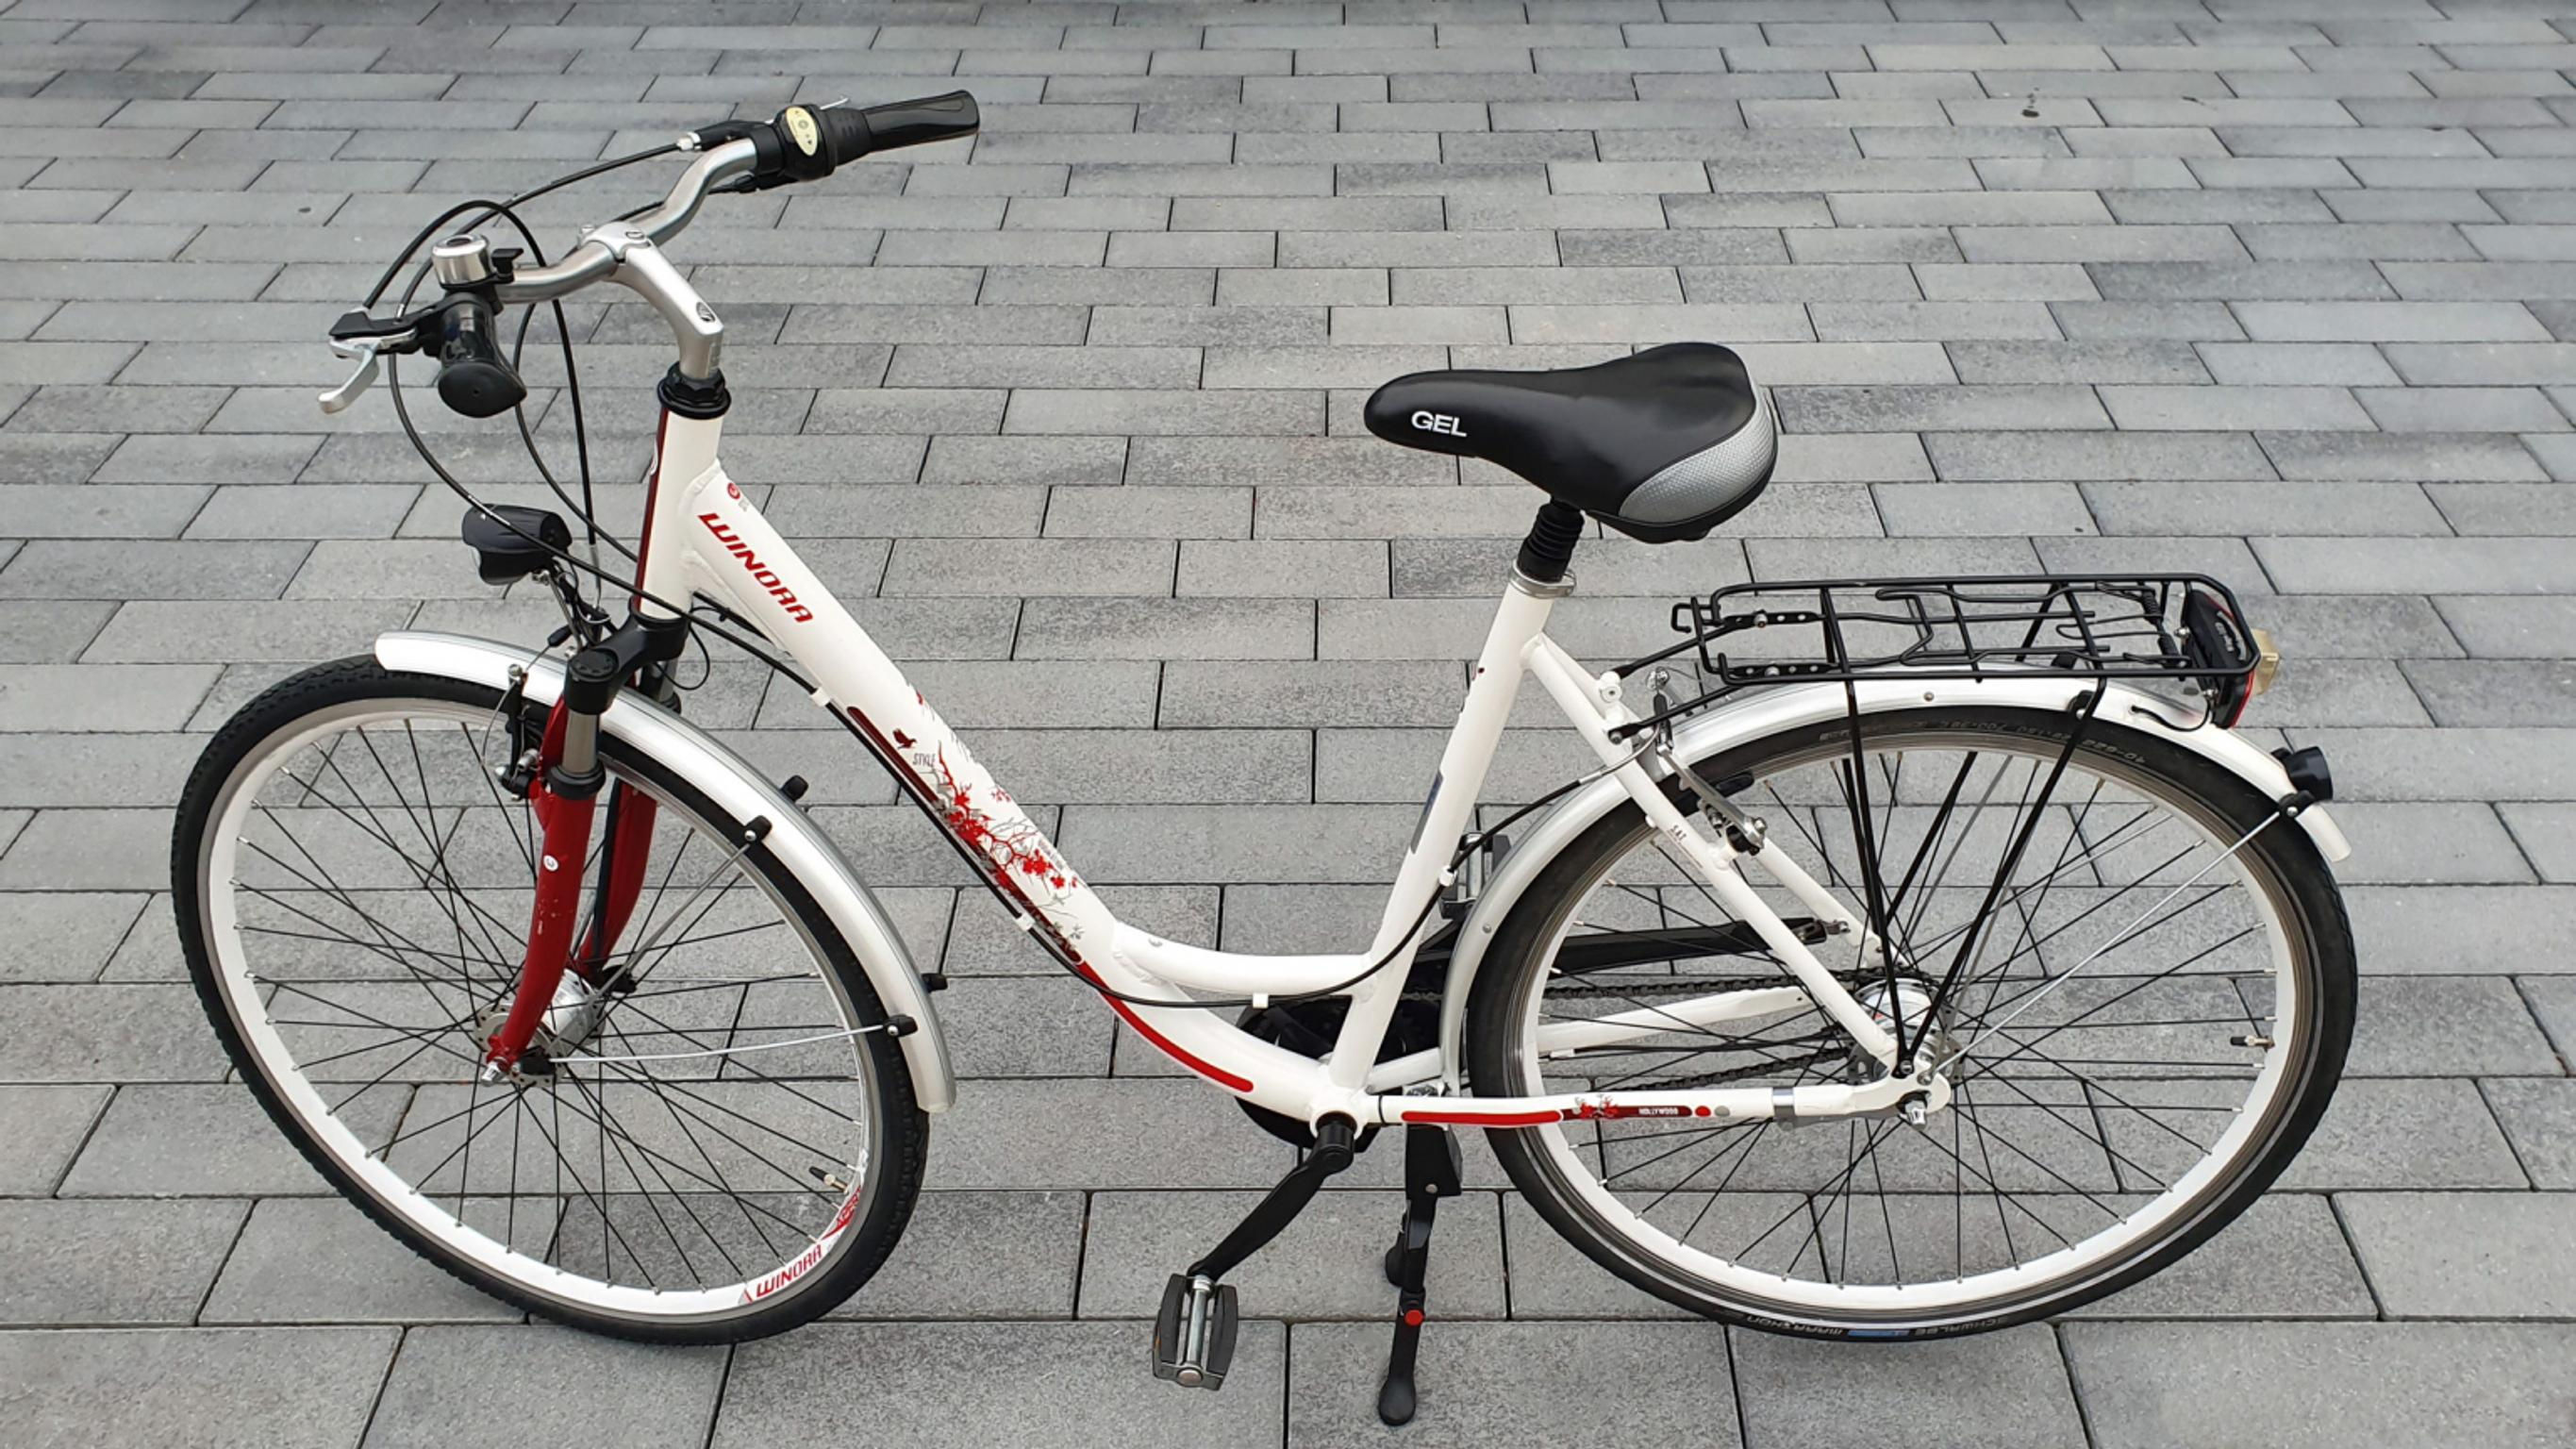 Damenfahrrad 28 Zoll City Winora Hollywood in 70839